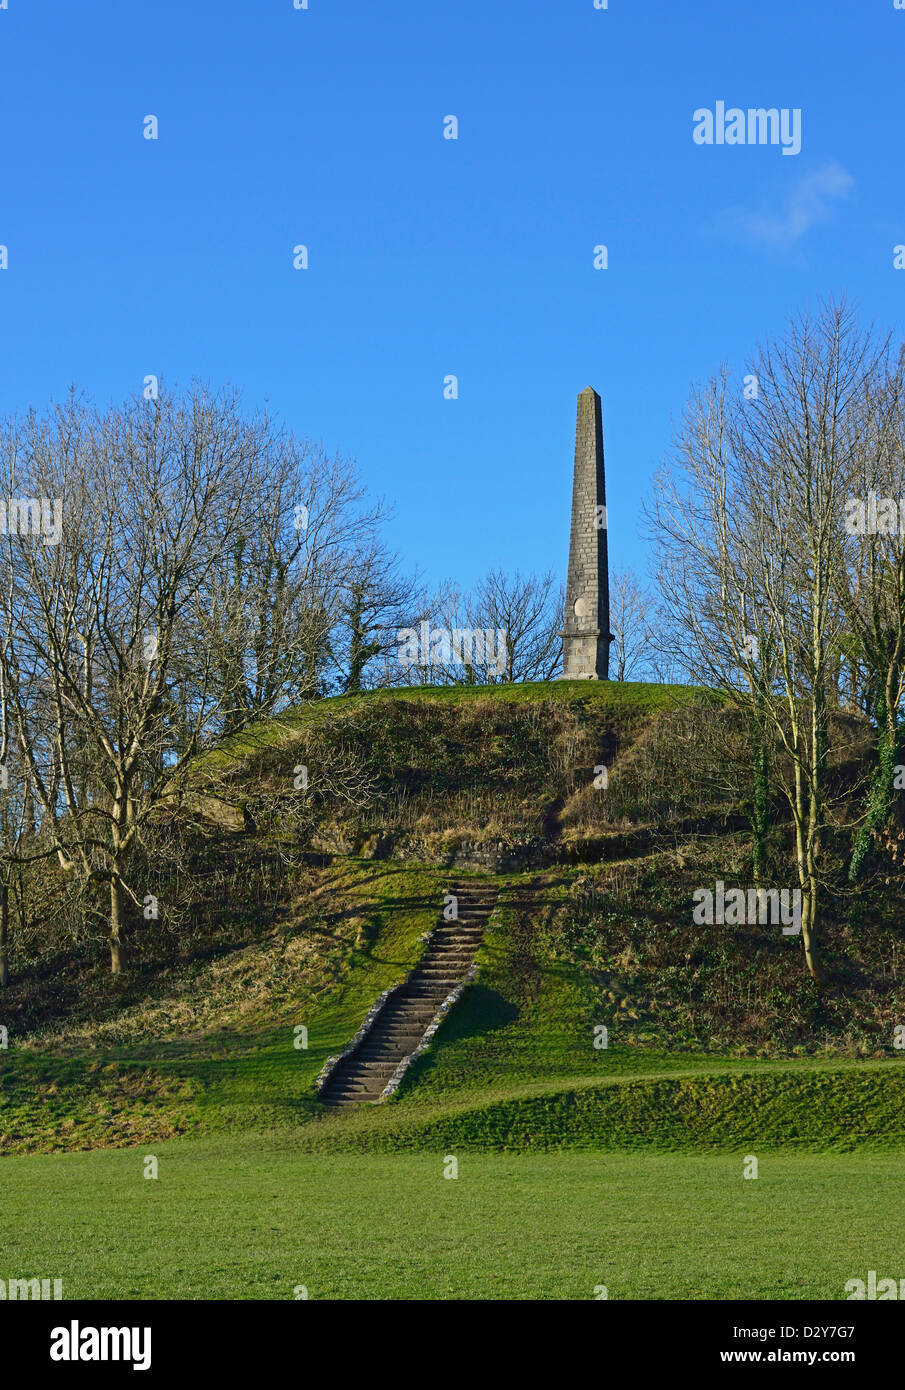 The Monument, Castle Howe, Bowling Fell, Kendal, Cumbria, England, United Kingdom, Europe. - Stock Image